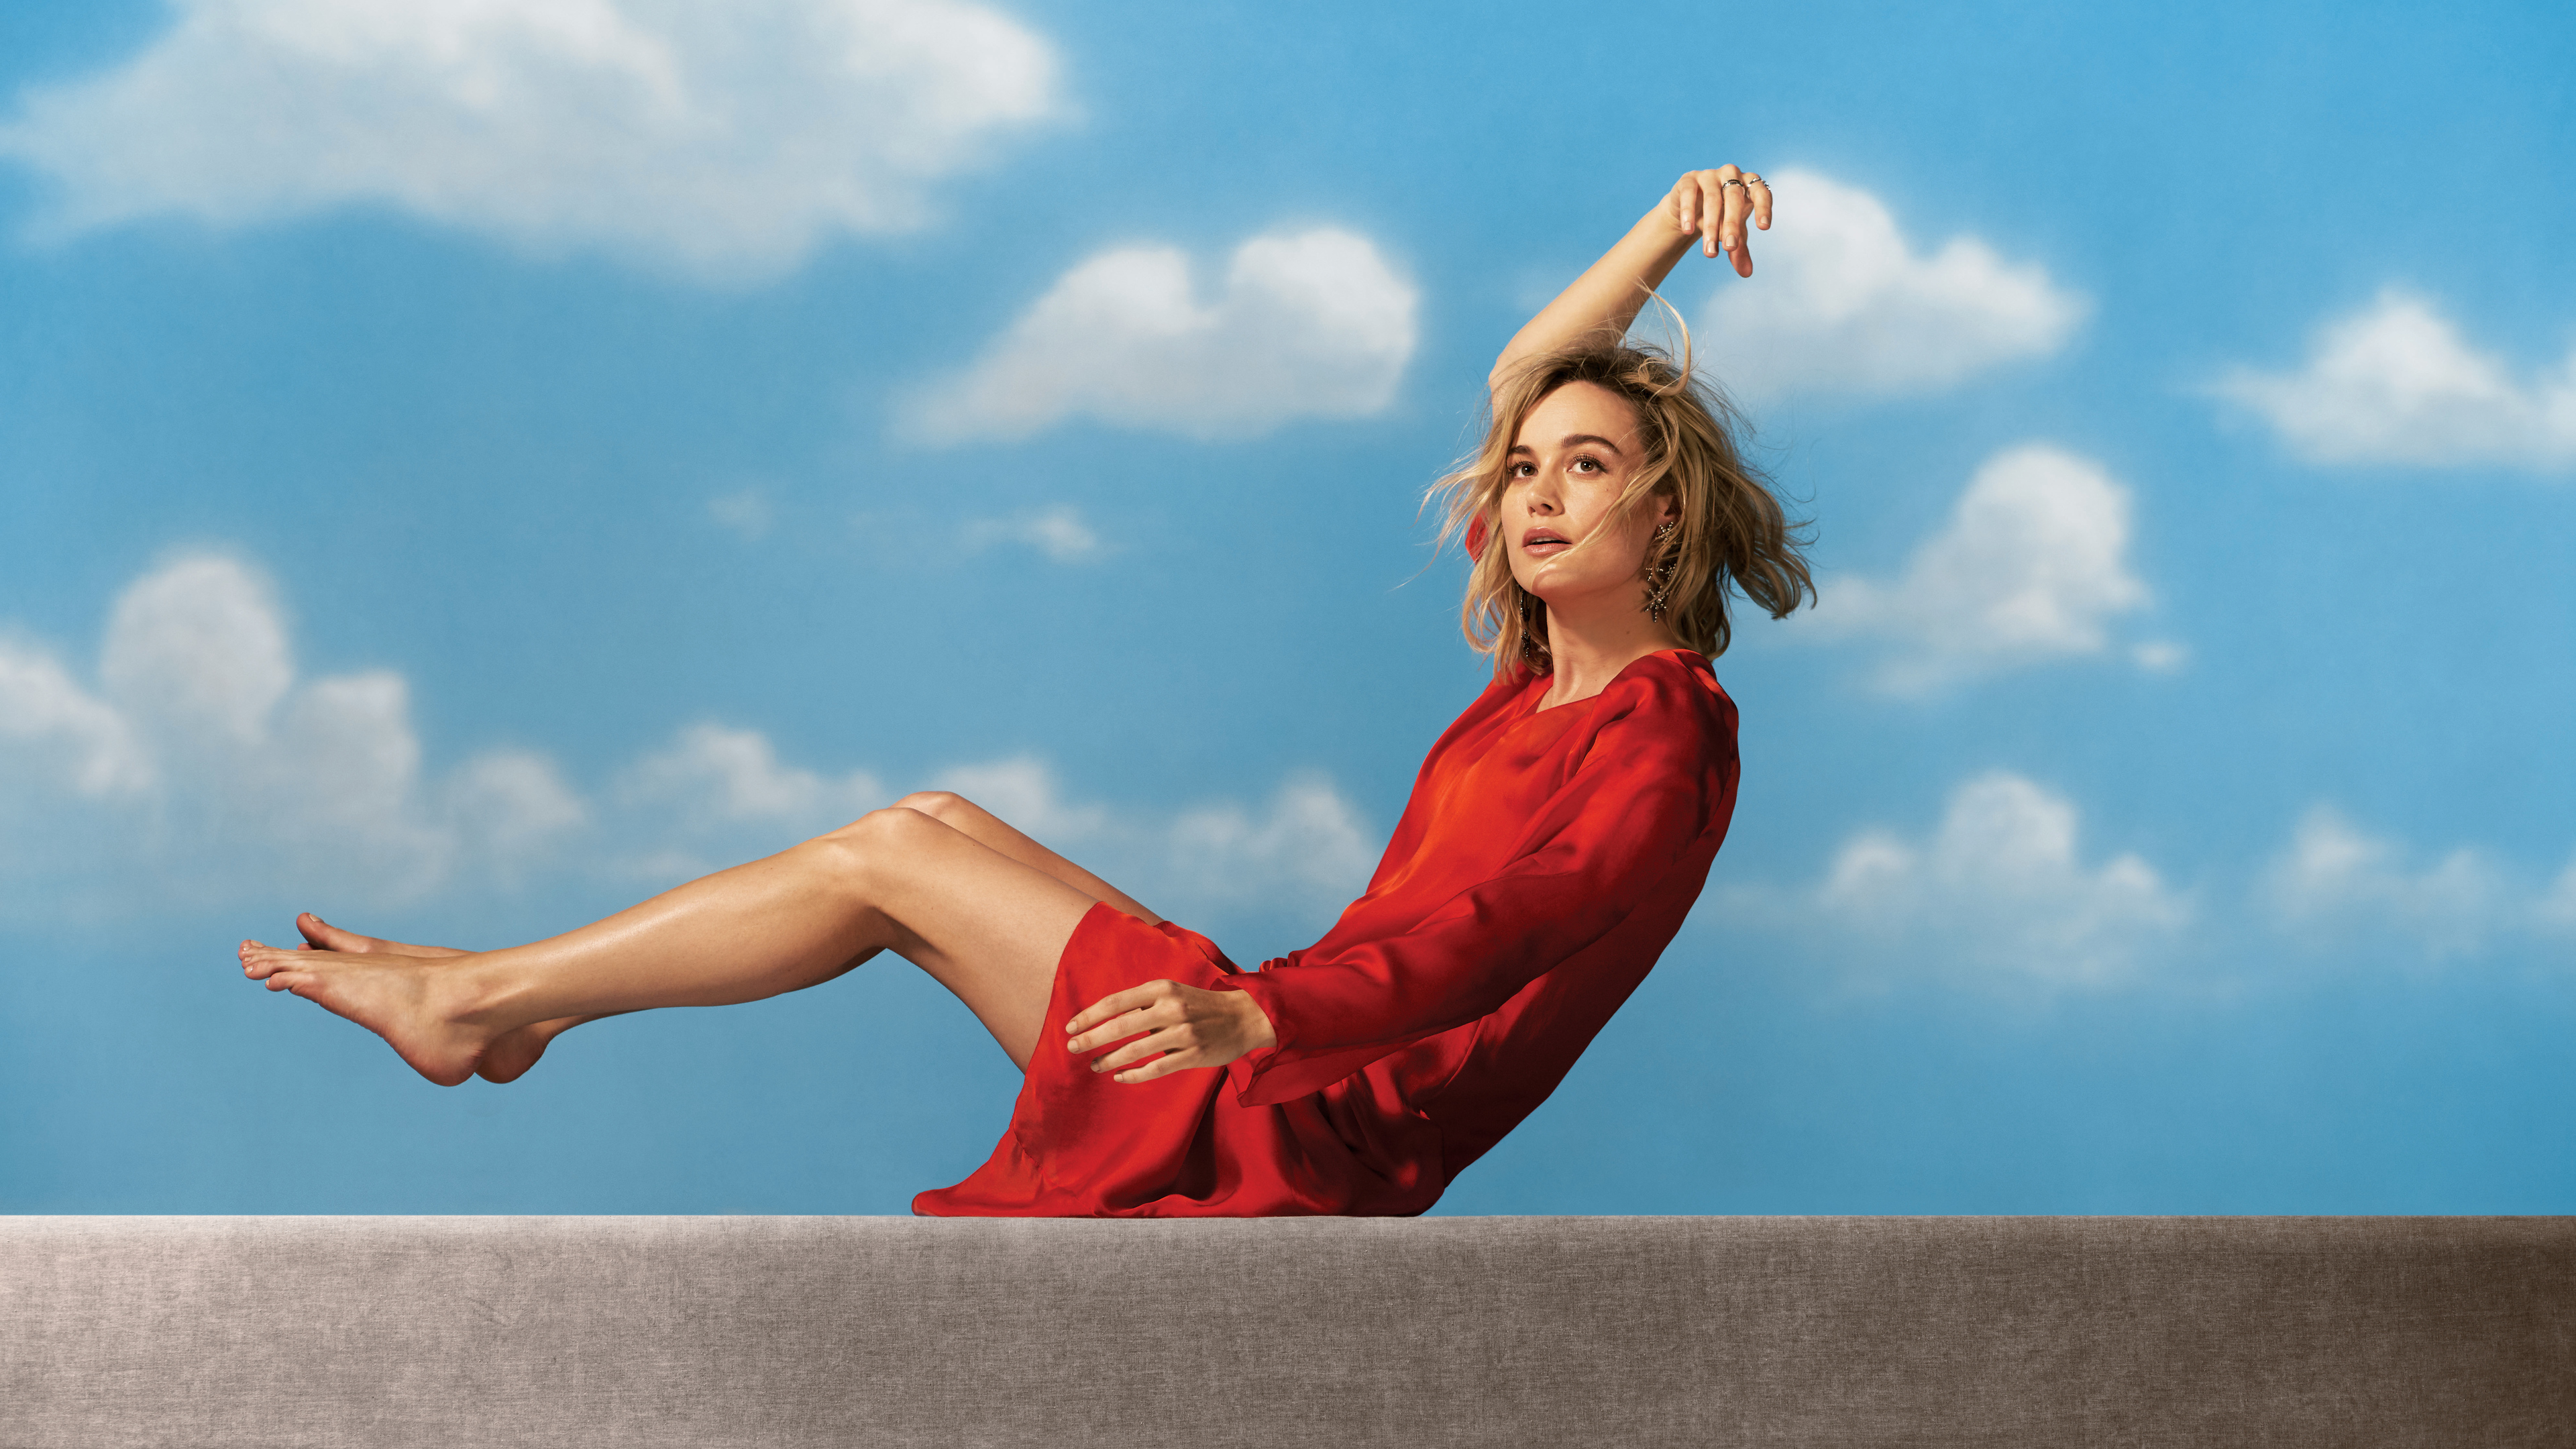 brie larson the hollywood reporter 4k 1553073250 - Brie Larson The Hollywood Reporter 4k - hd-wallpapers, girls wallpapers, celebrities wallpapers, brie larson wallpapers, 8k wallpapers, 5k wallpapers, 4k-wallpapers